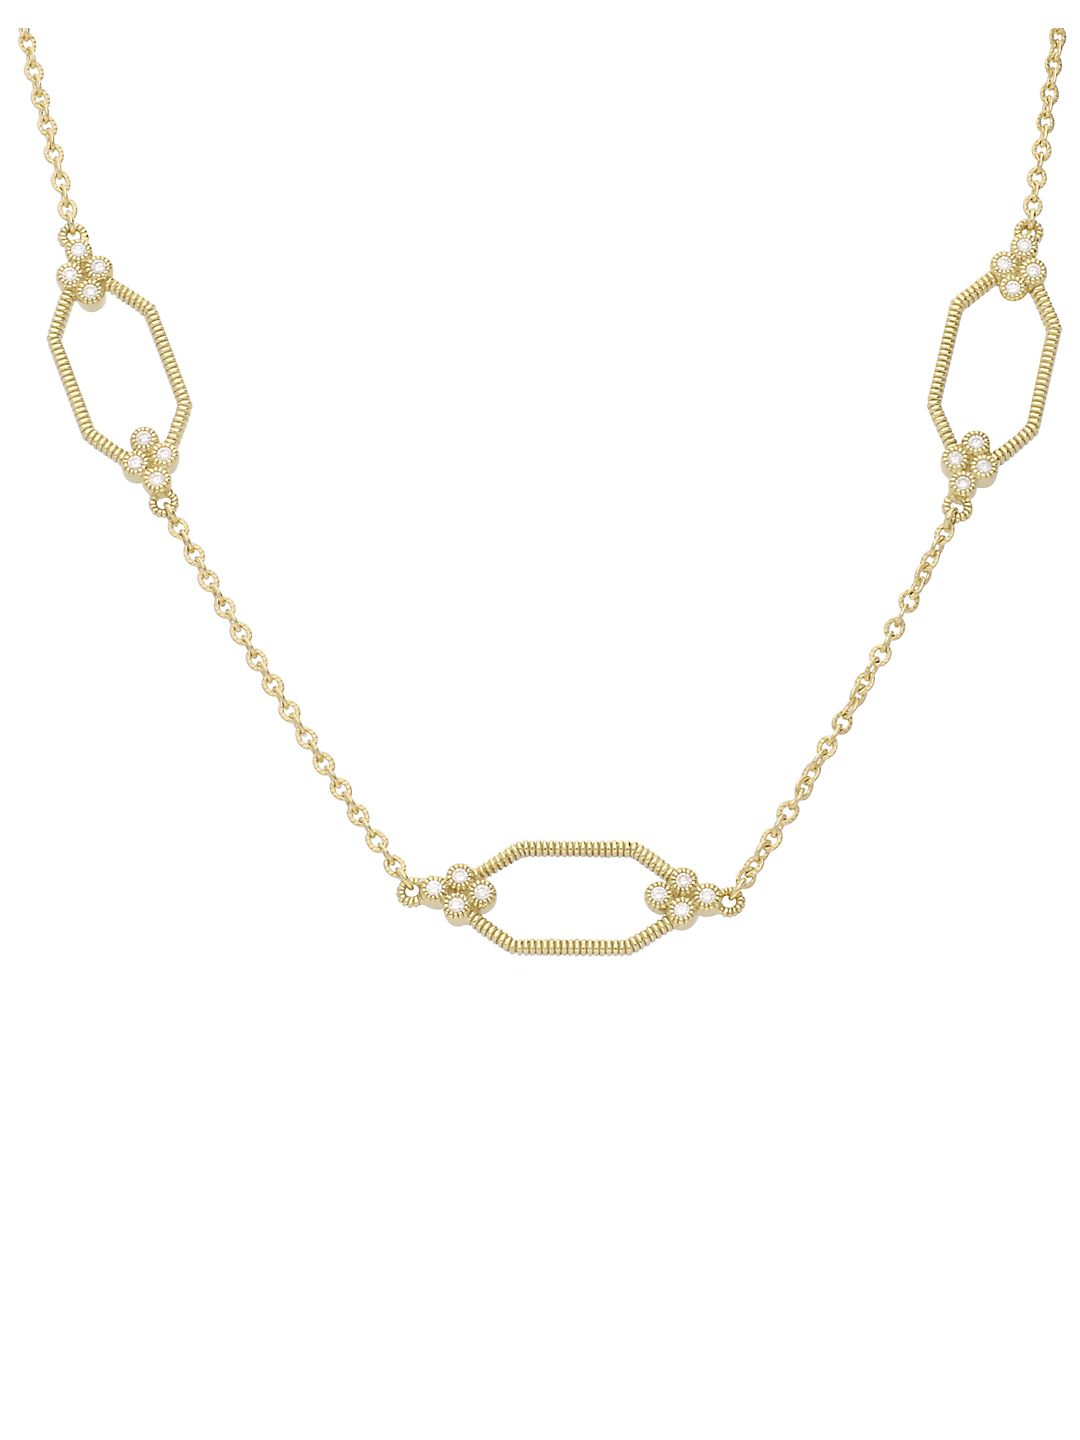 Juliette Diamond and 14K Gold Hexagonal Station Chain Necklace